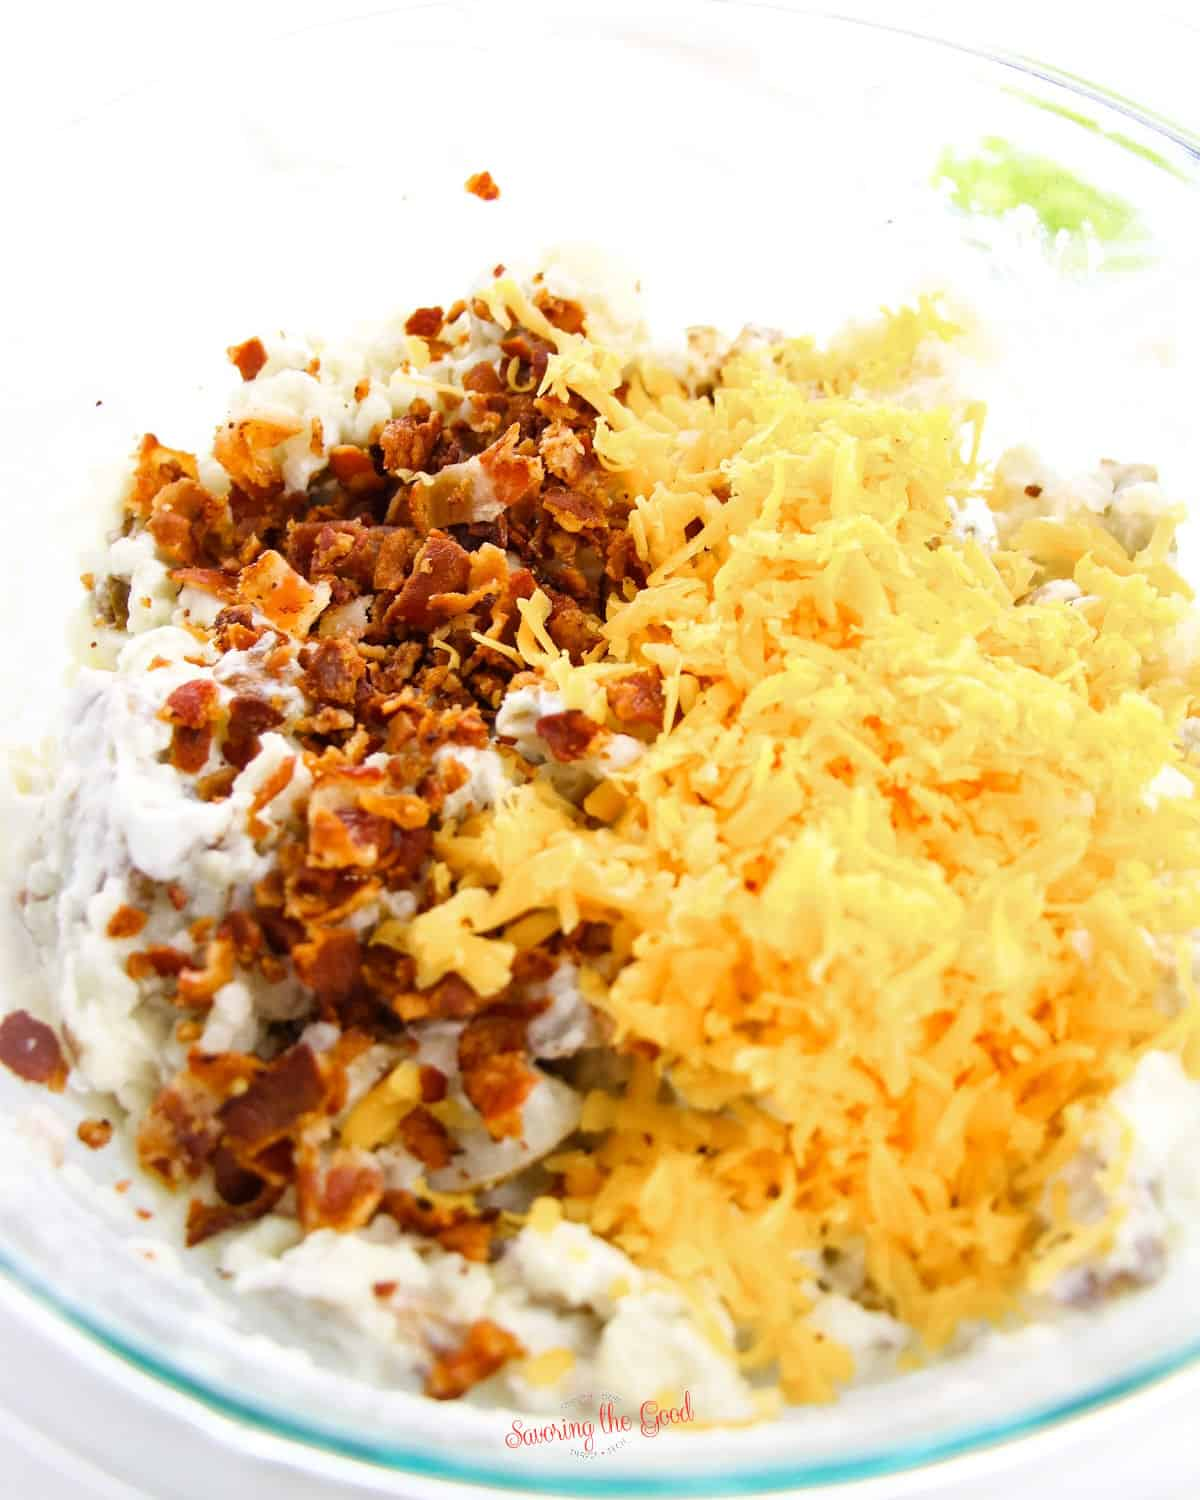 cheese and bacon being mixed into patatoes